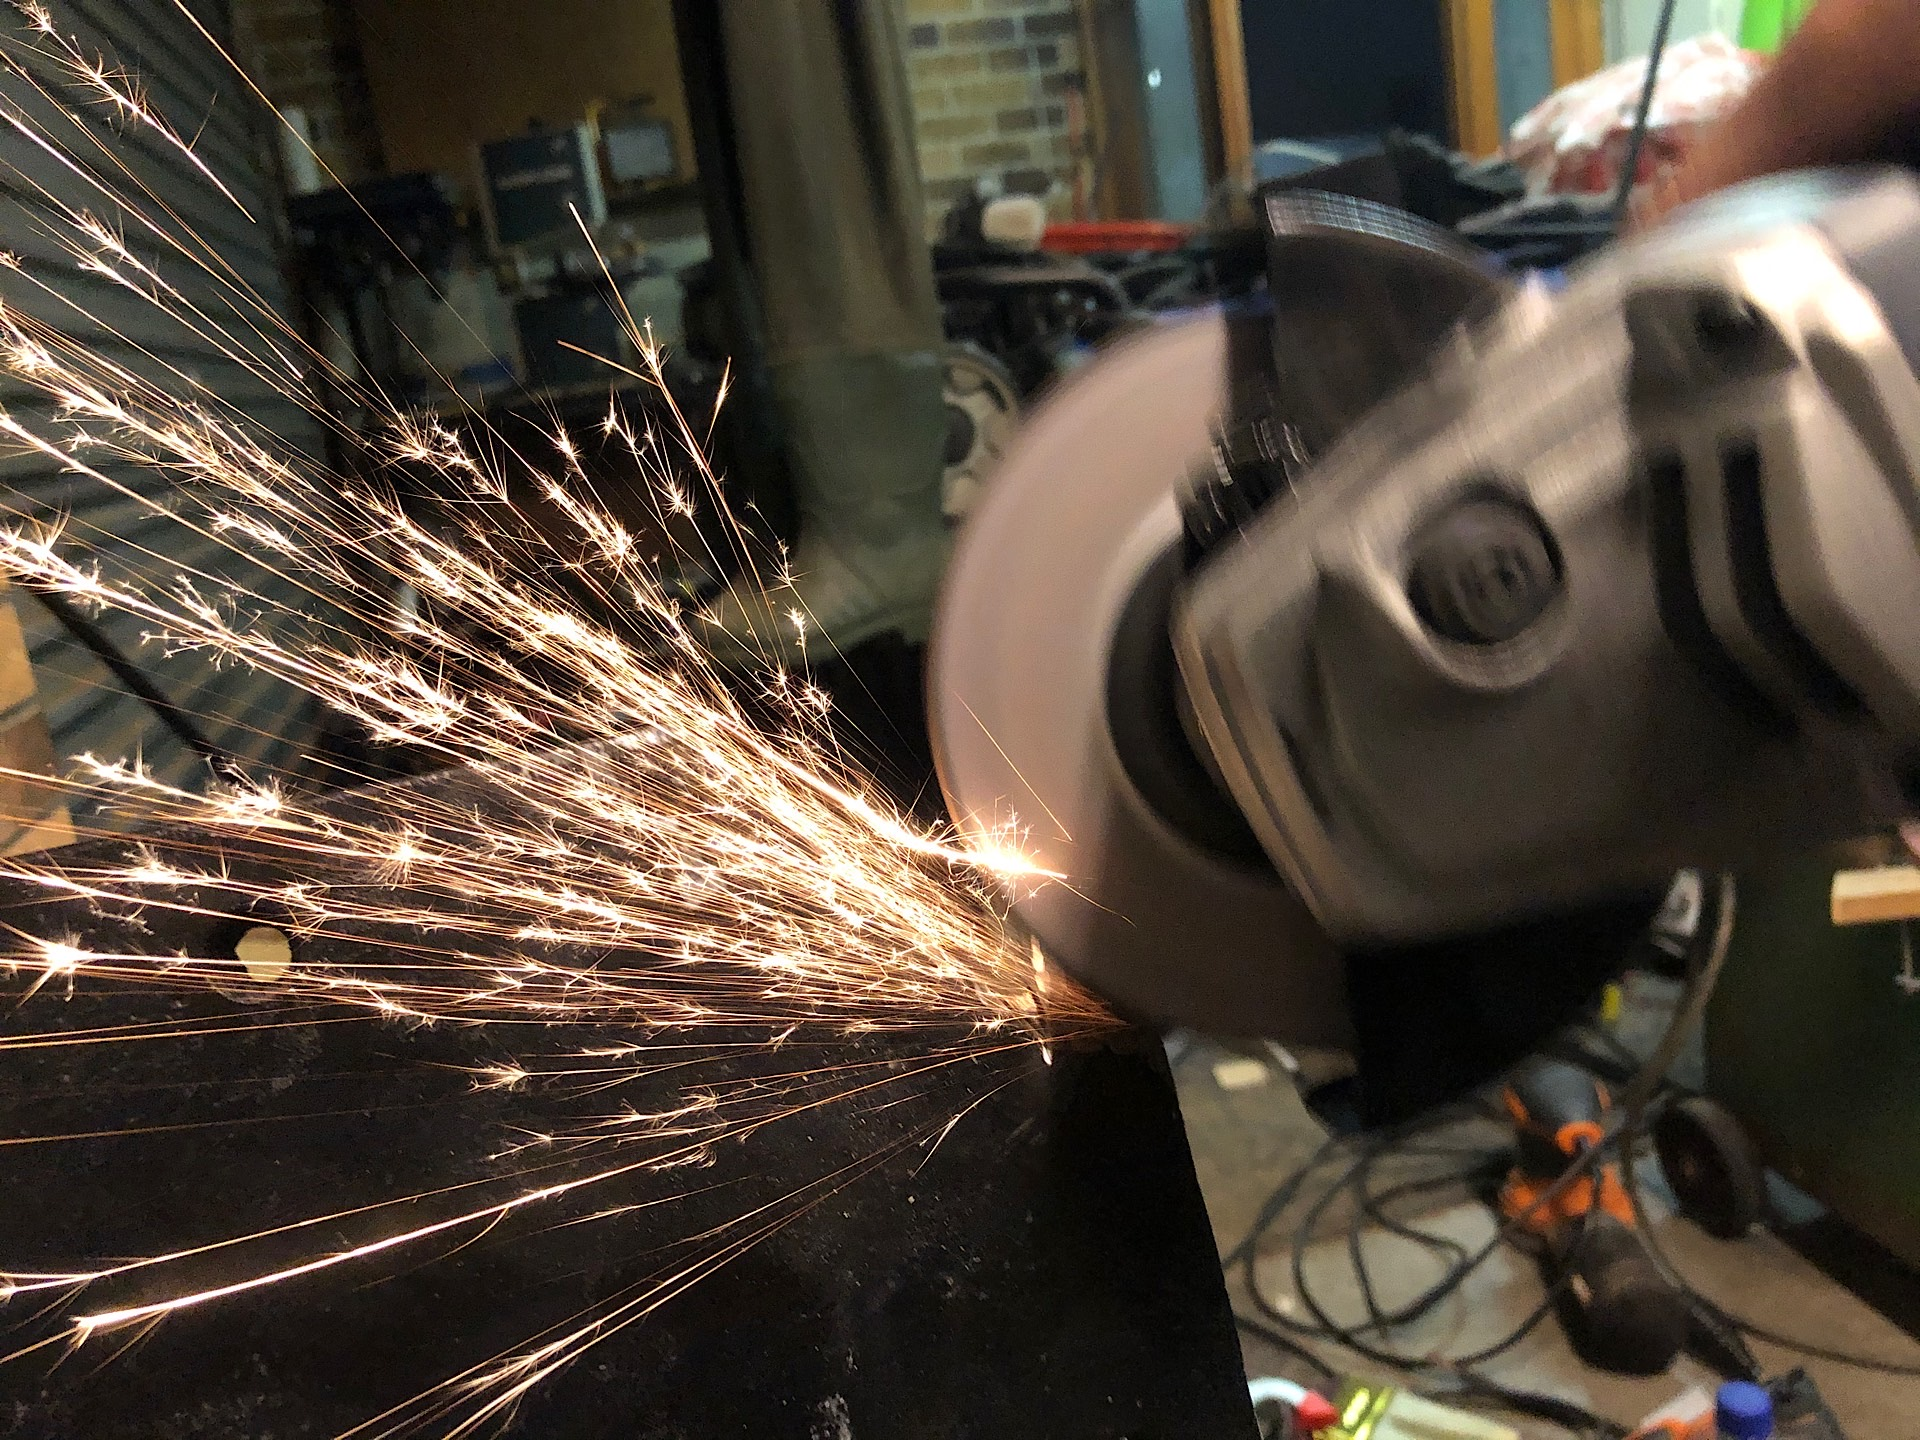 Finishing the cut with an angle grinder